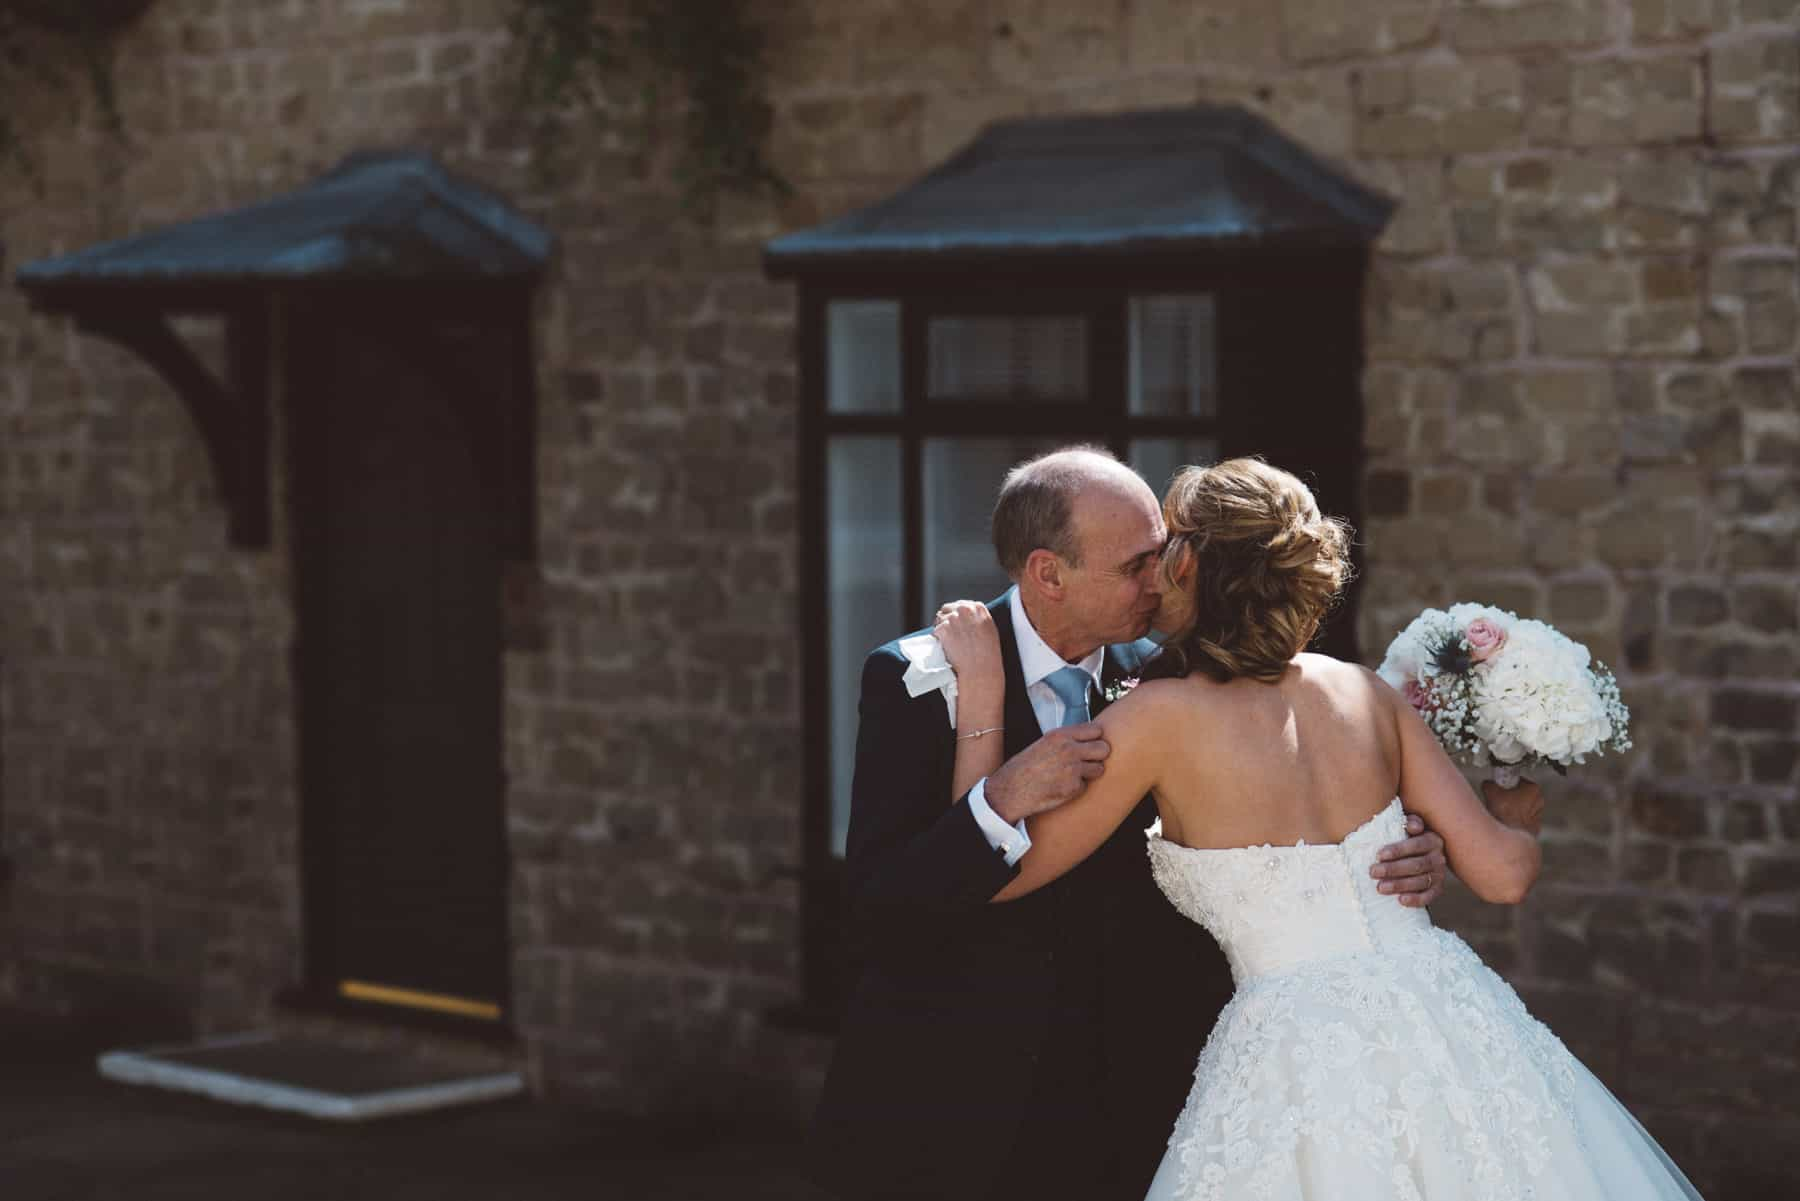 wedding photography bride and her dad (1 of 1)